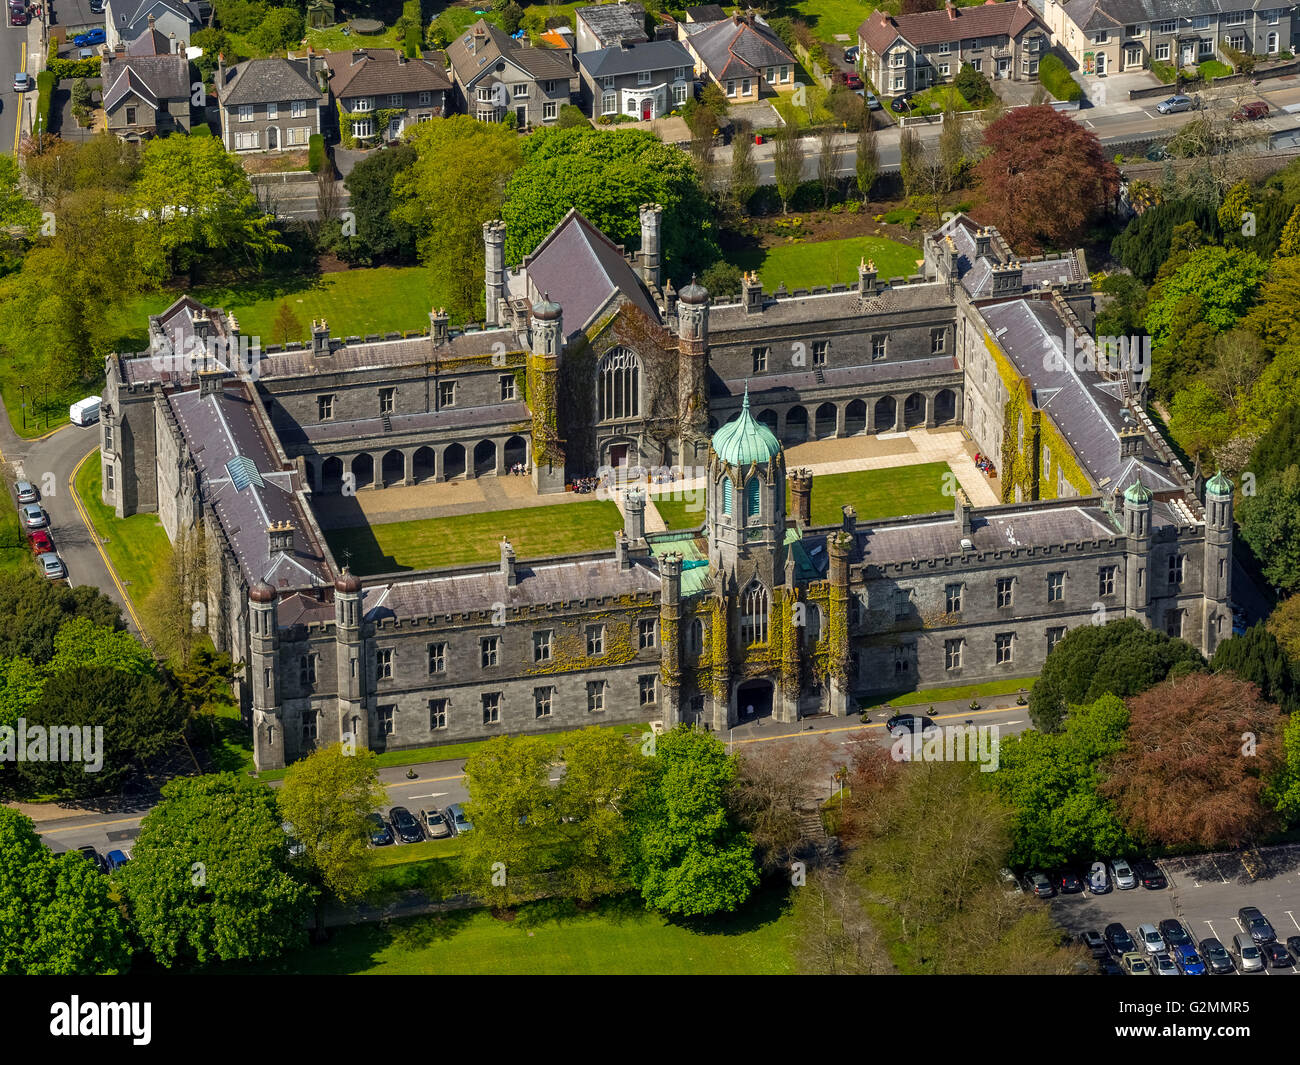 Aerial view, Quadrangle next to the University of Galway, Galway, Galway, COUNTY CLARE, Galway, Ireland, Europe, - Stock Image